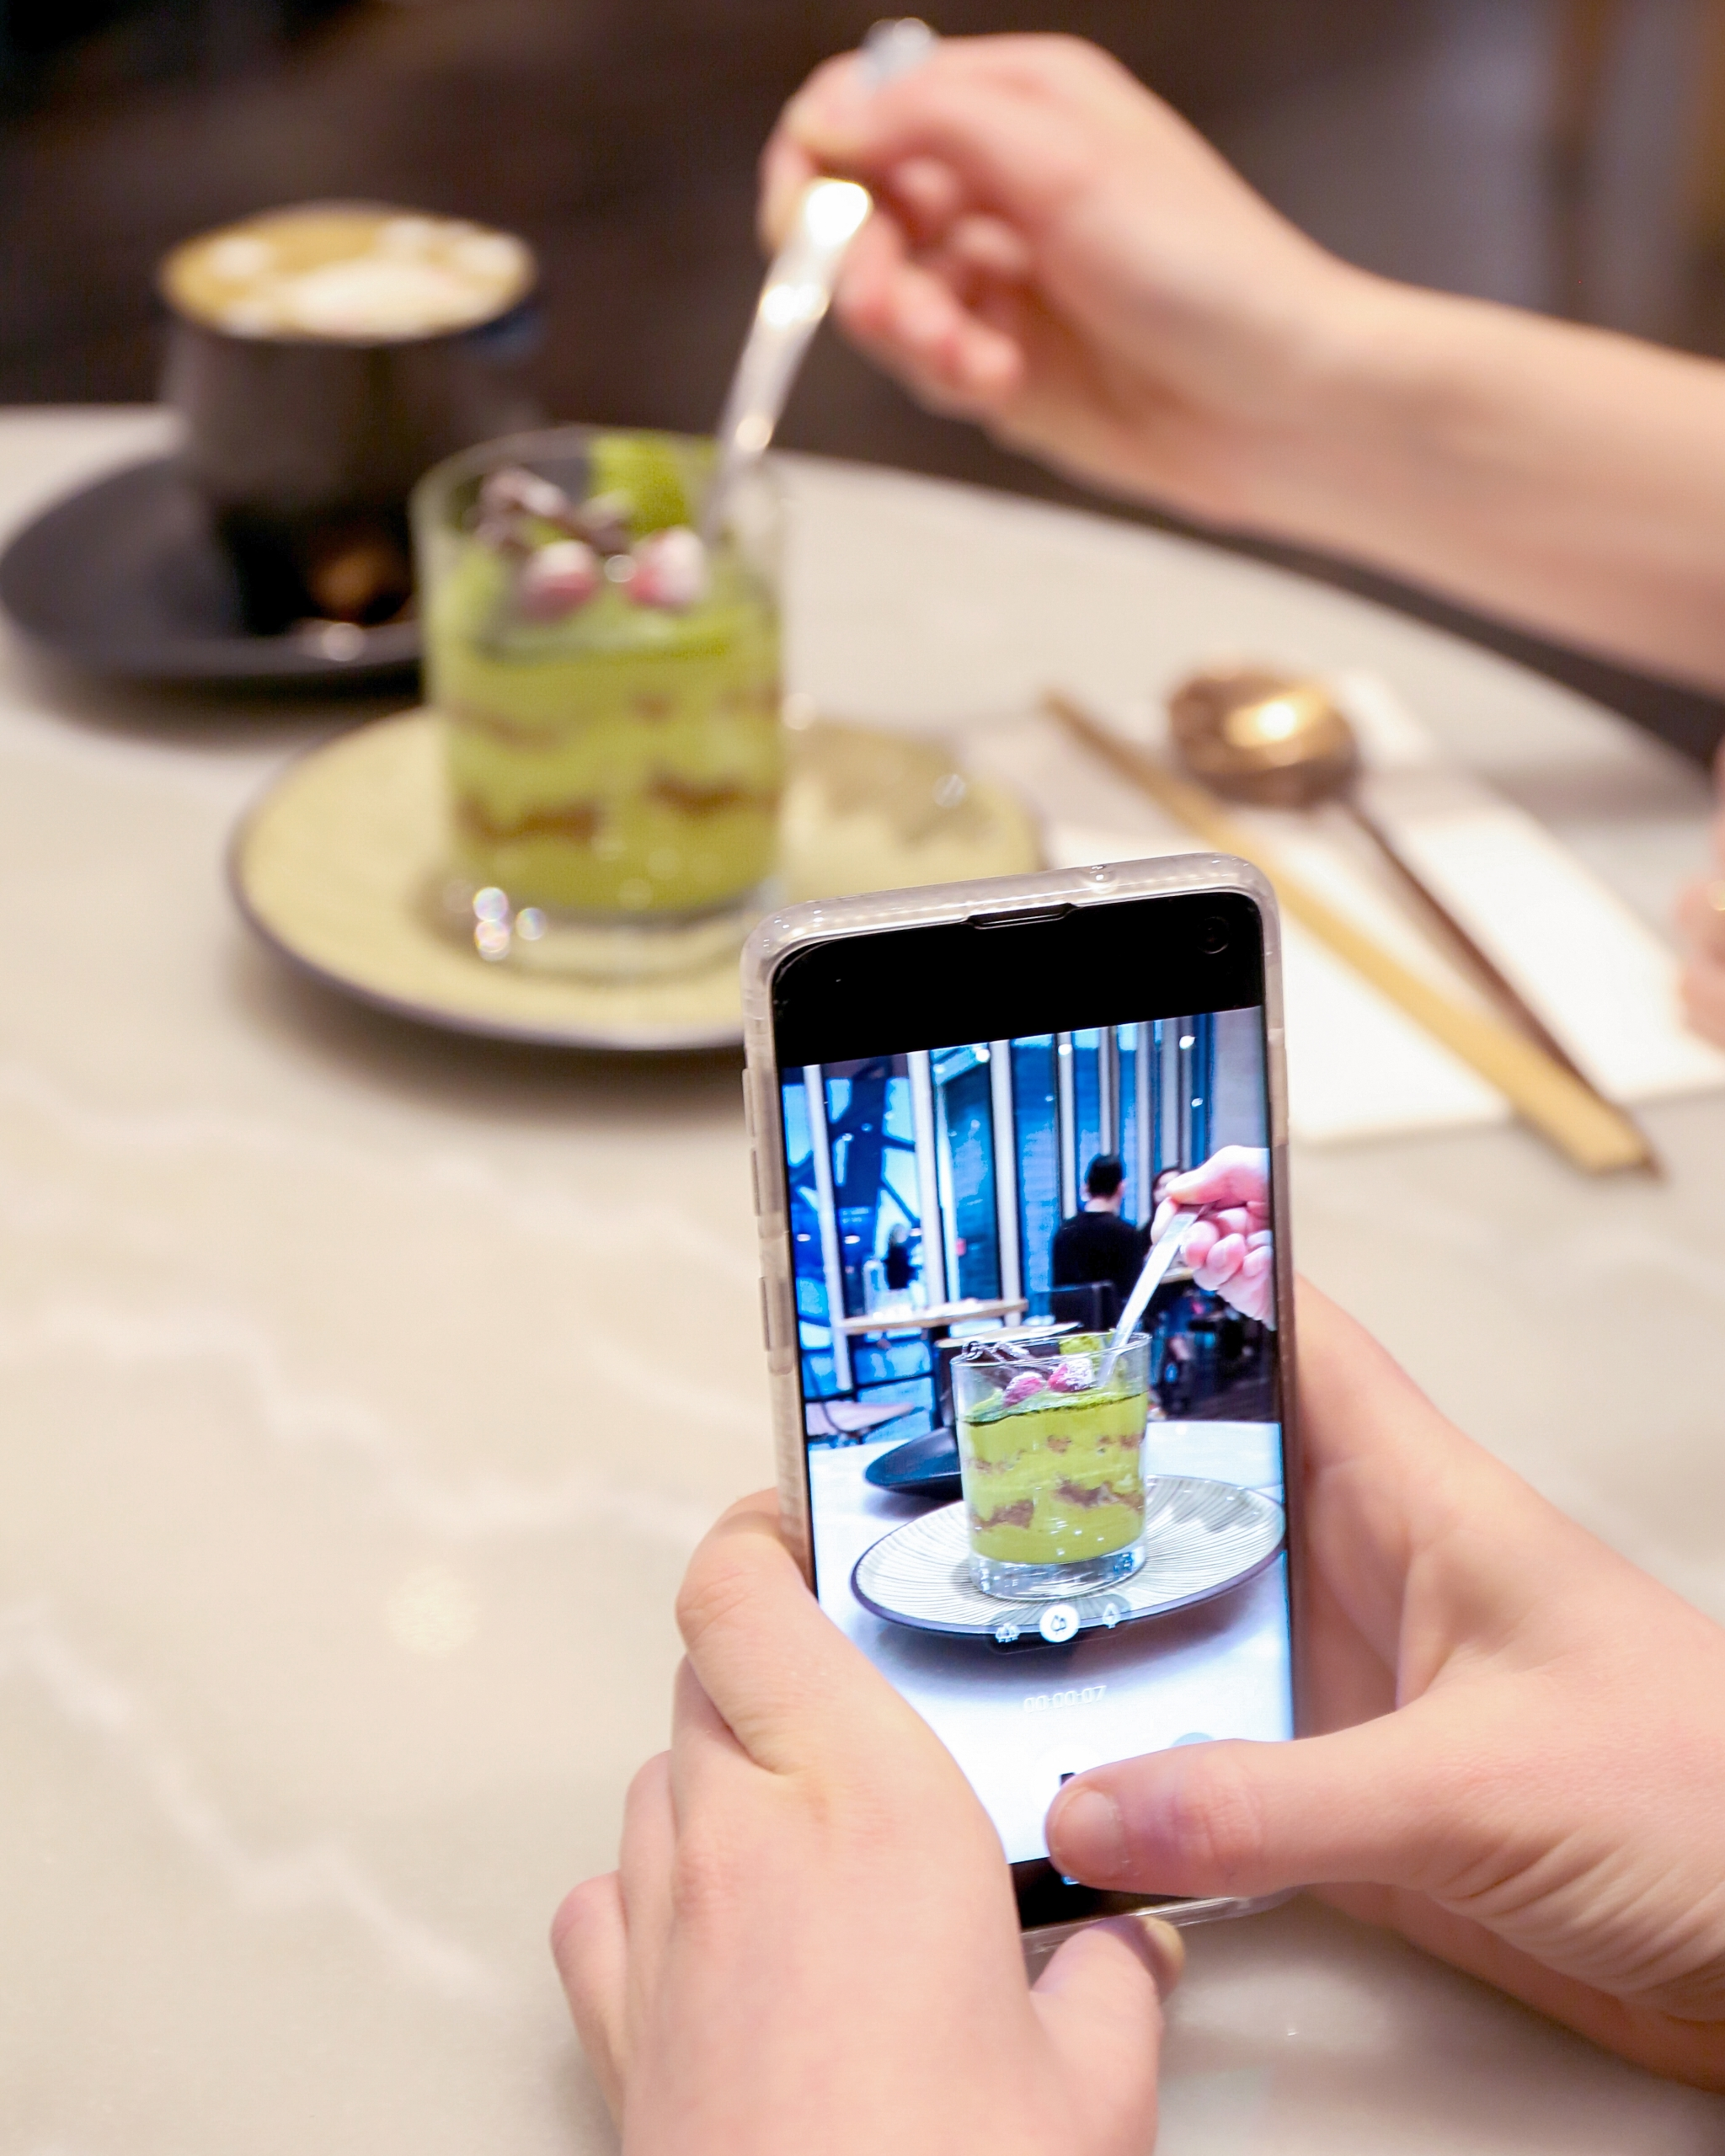 6 Video Trends that Dominated Social Media in 2020